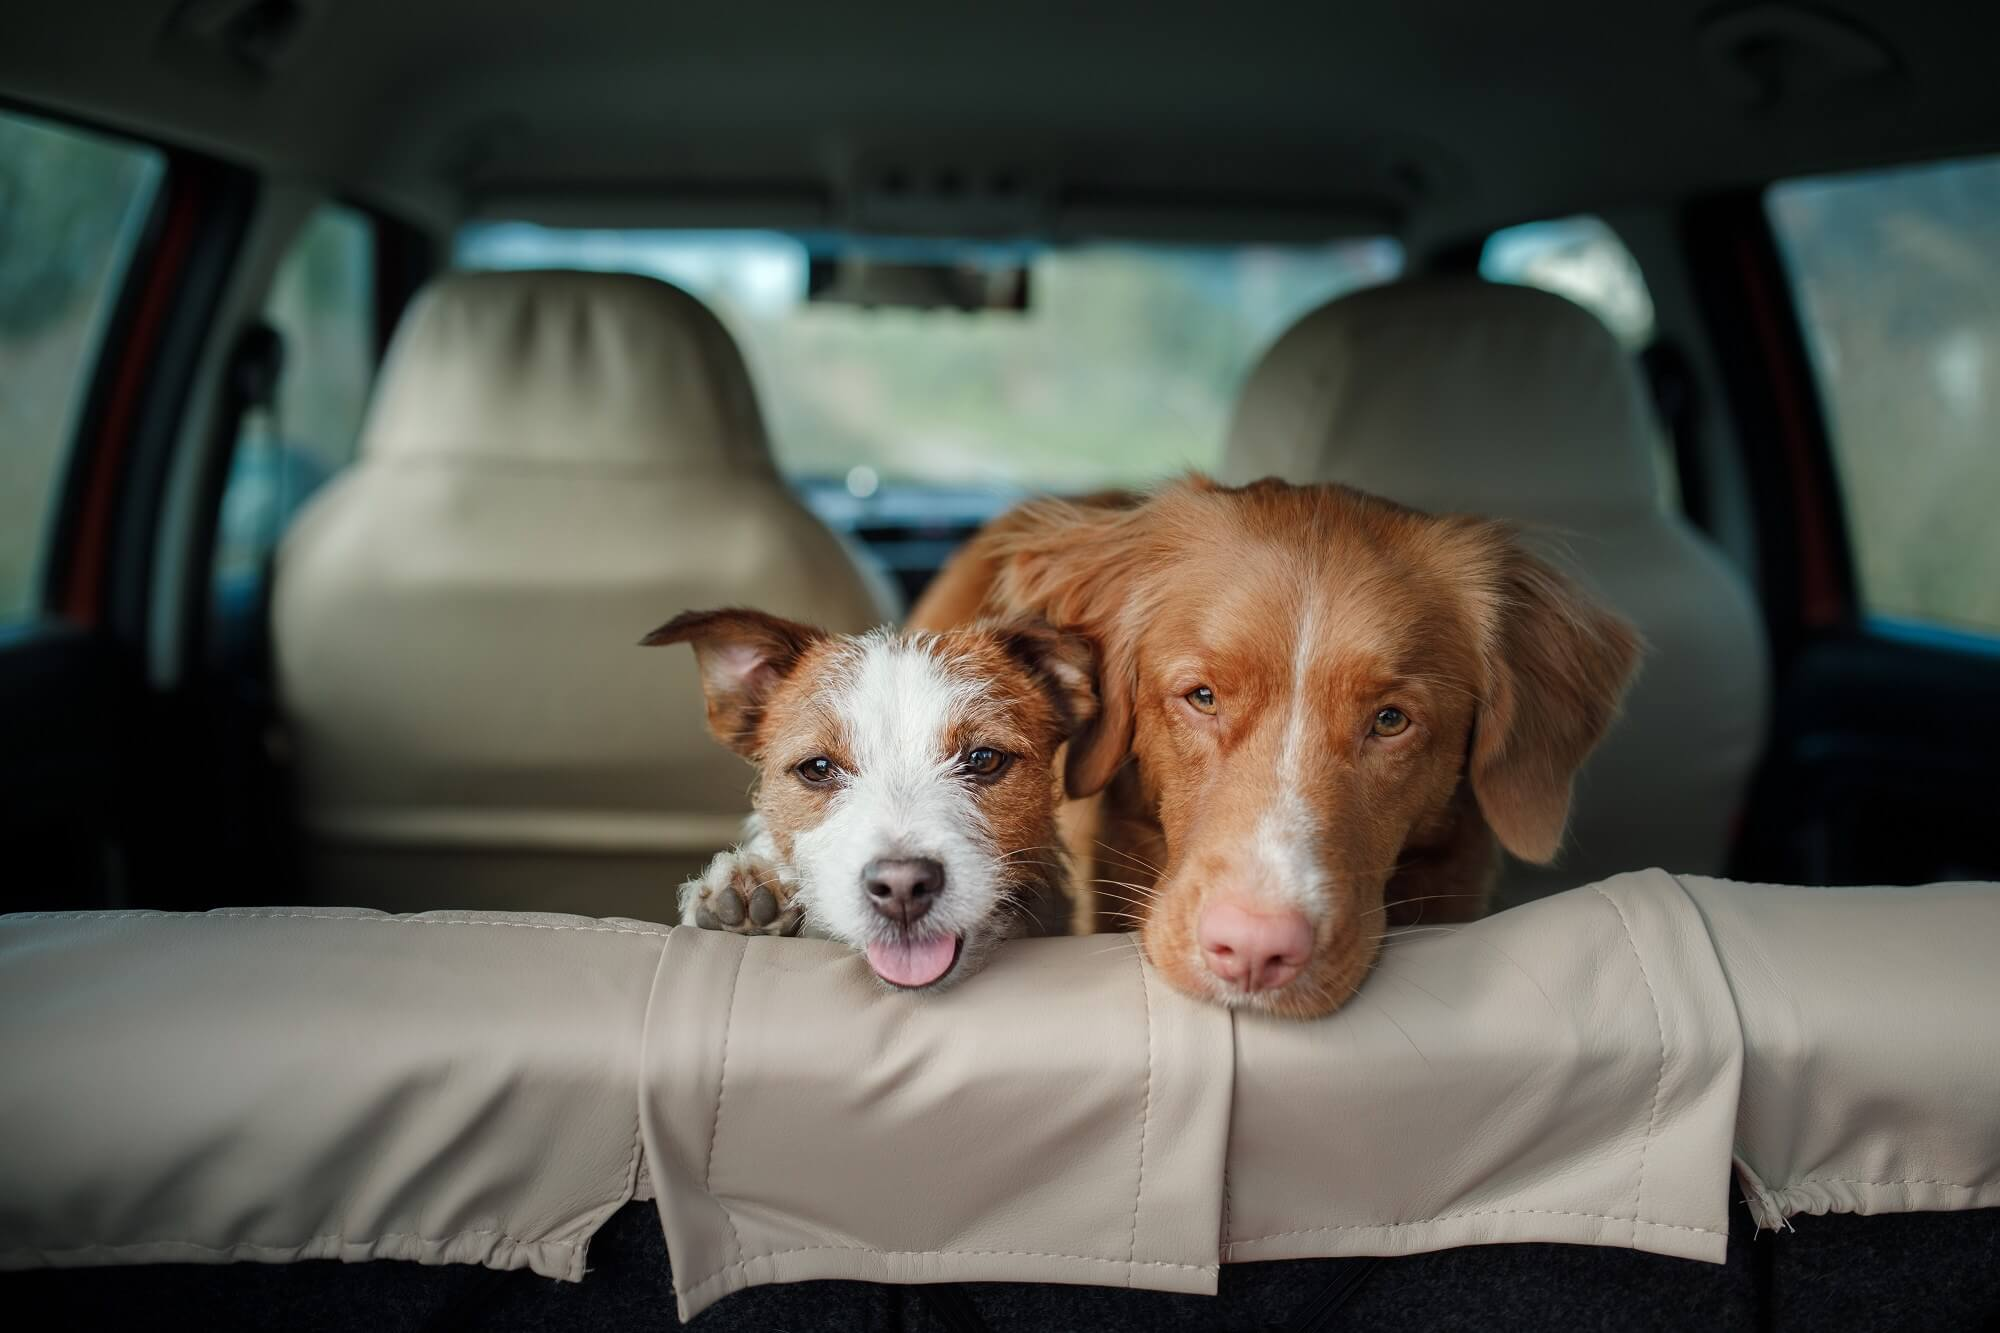 Tesla update to include Dog Mode